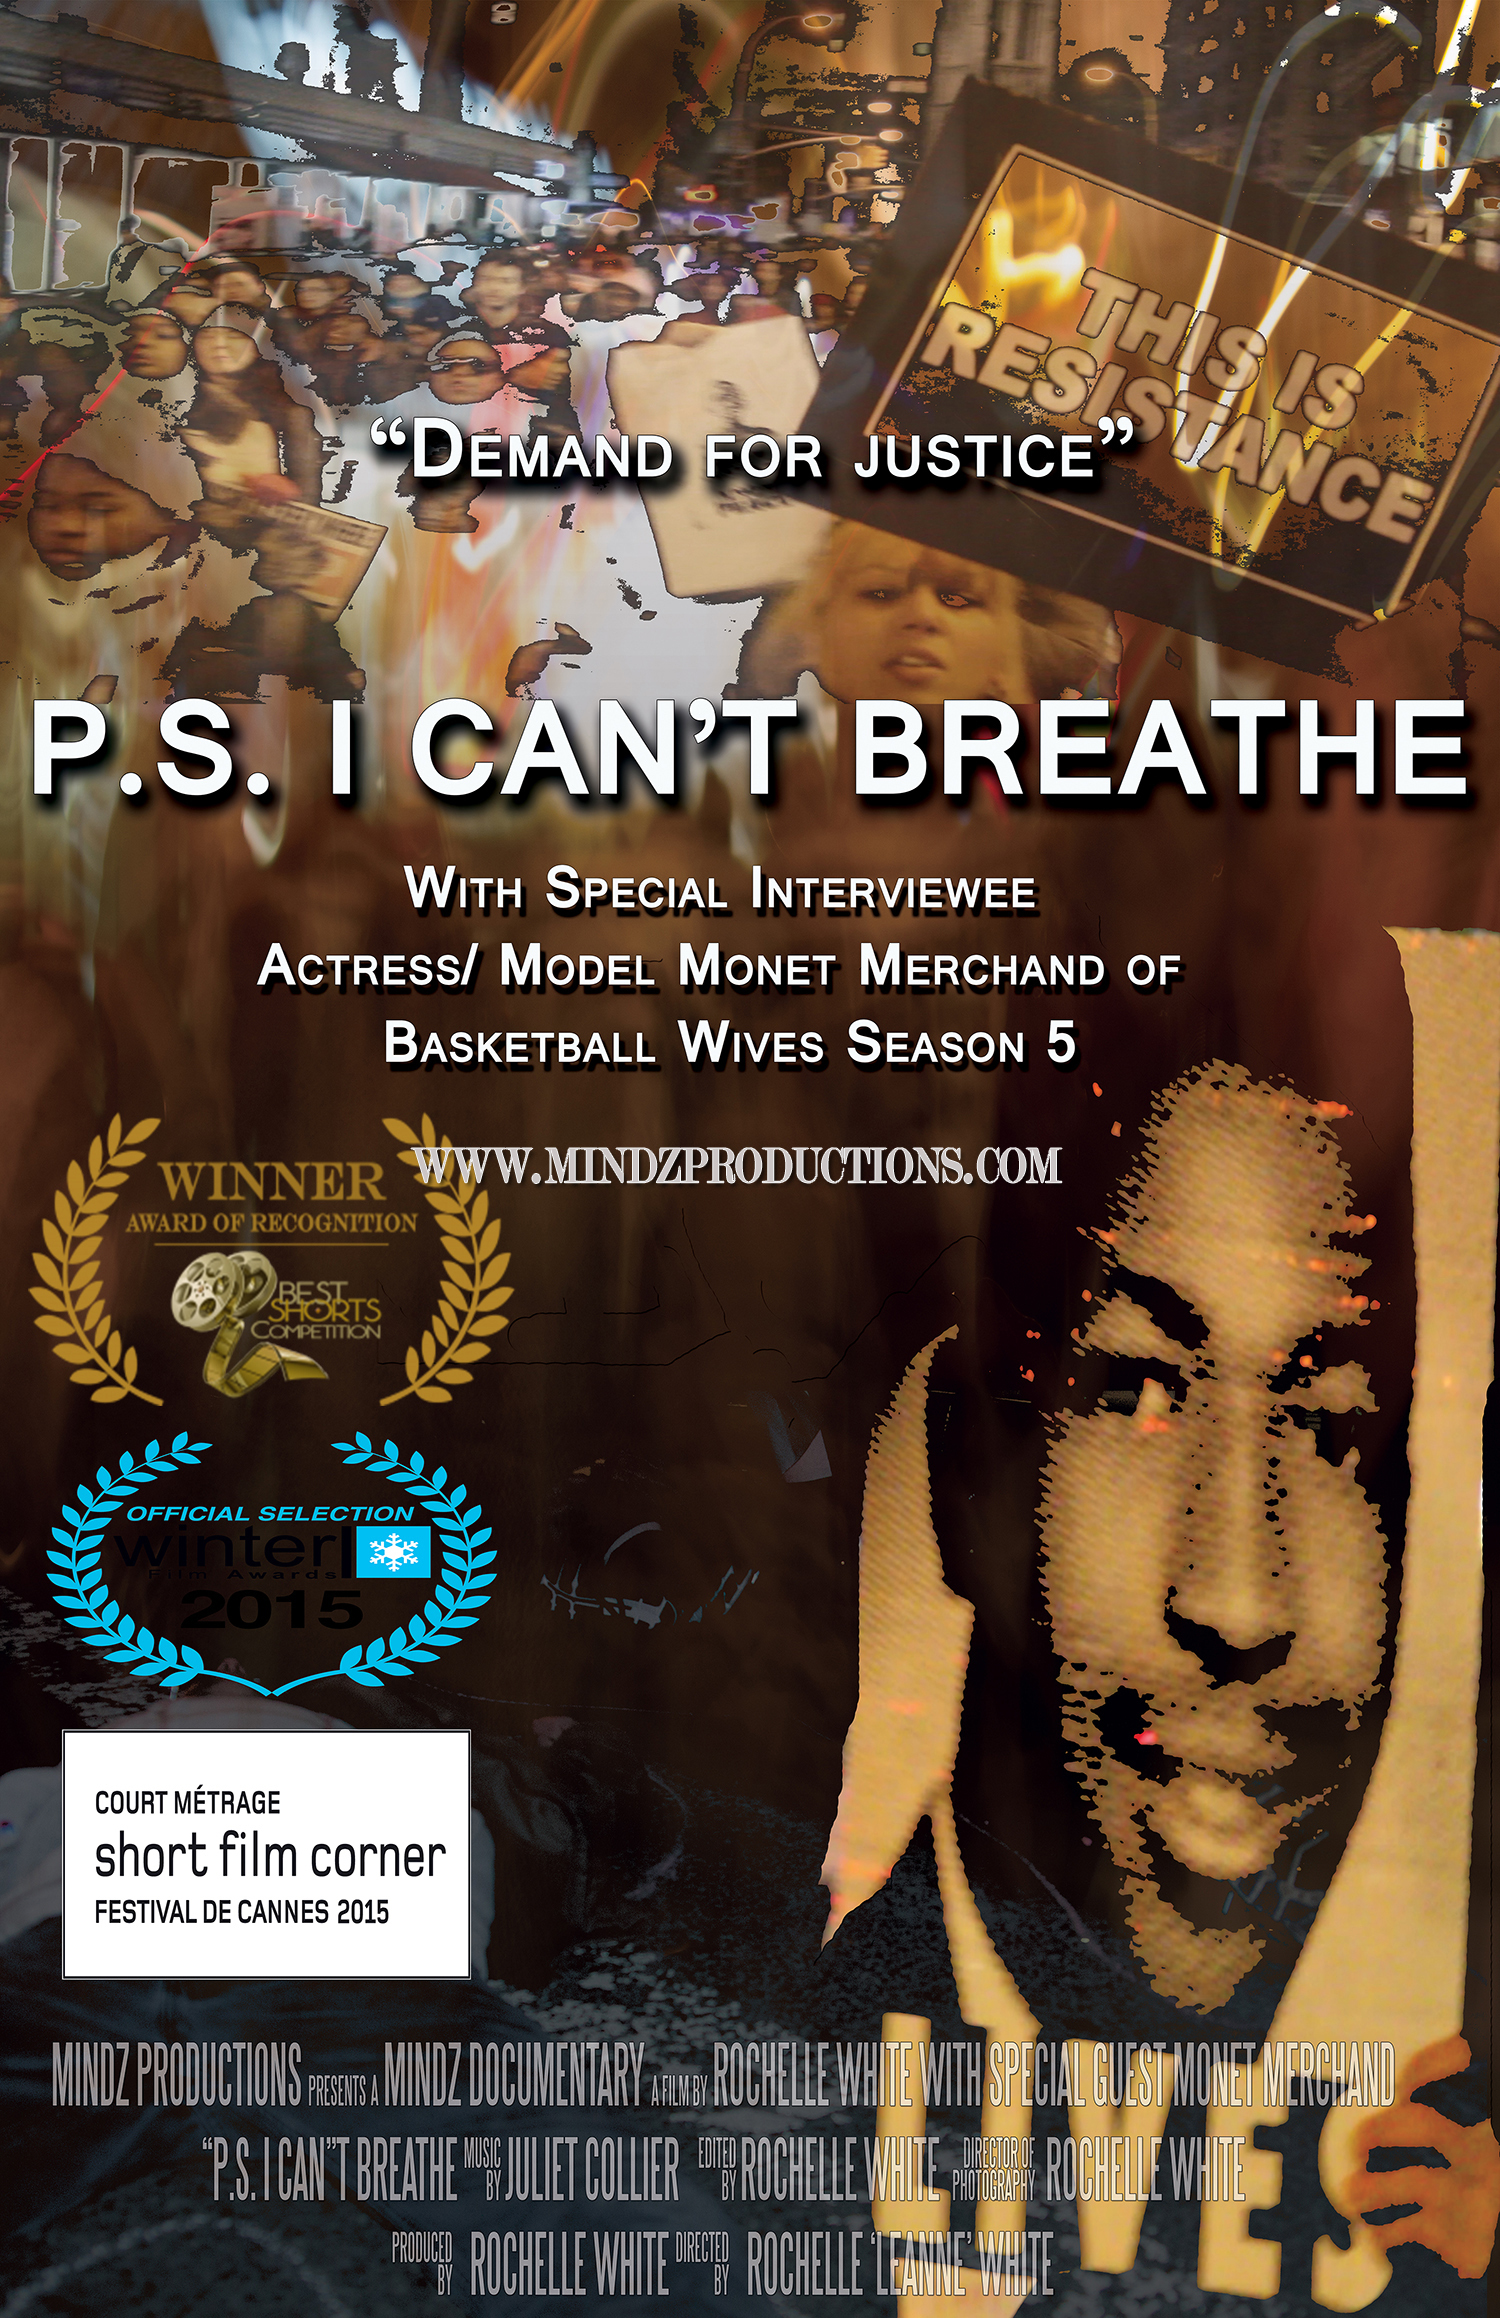 P.S. I Can't Breathe E-Study Guide (Unlimited Print) Sent Via Email 0000001